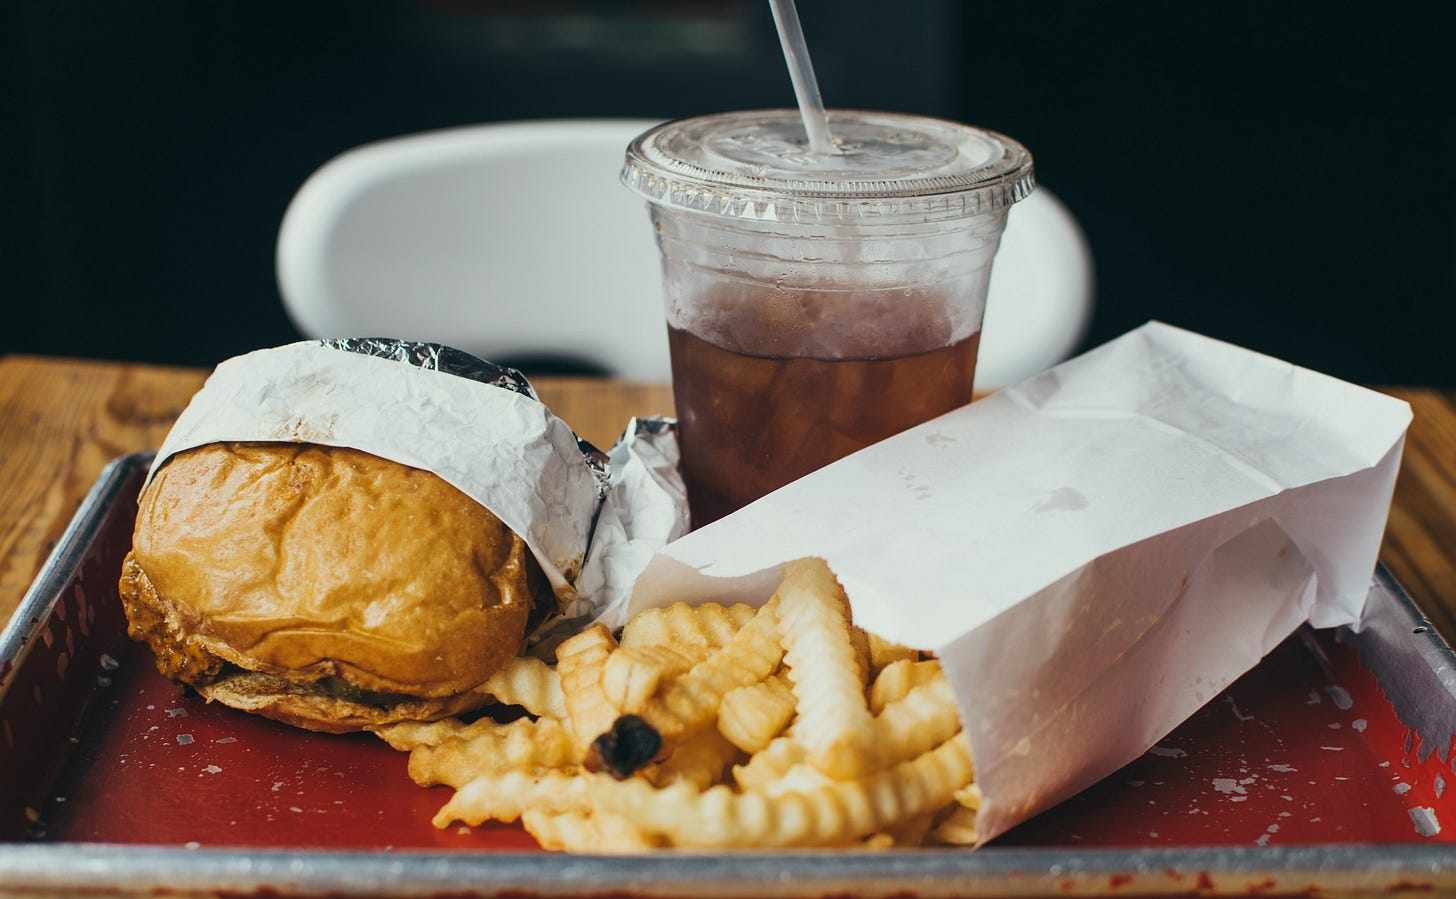 image of a burger, fries and fizzy drink on a tary for article by Larry G. Maguire on fitness